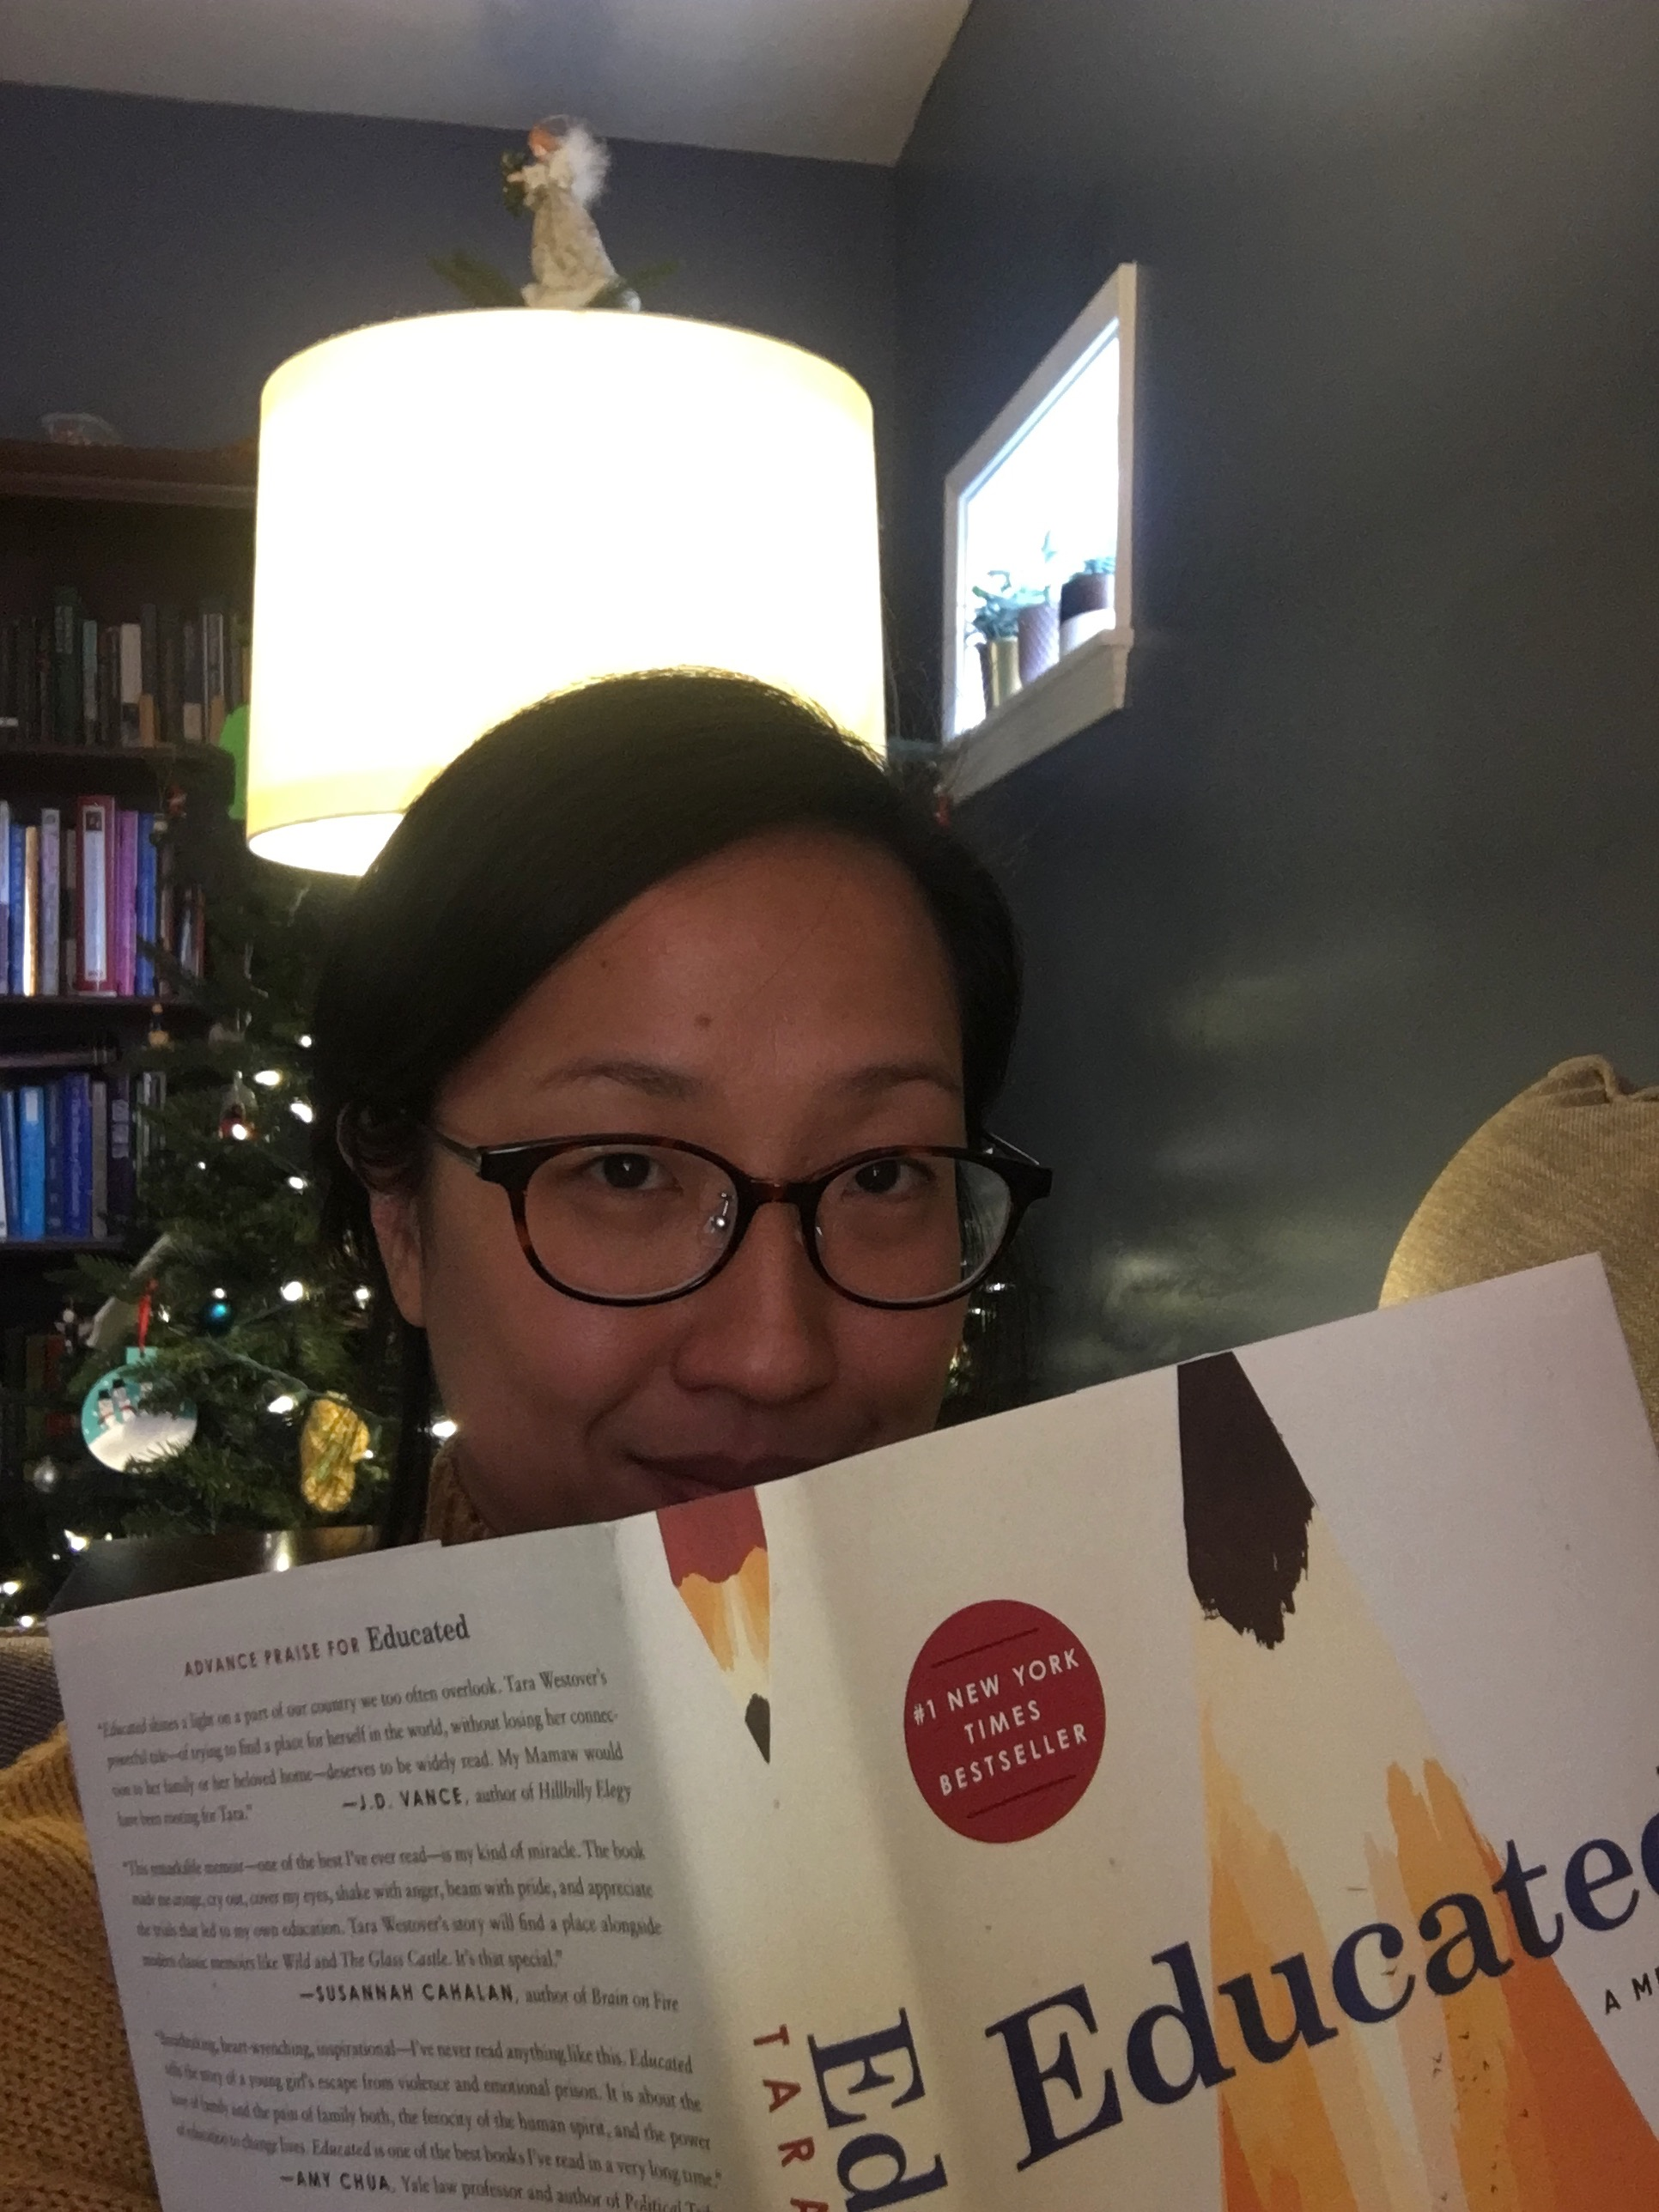 Spent a morning at La Jolla's independent bookstore,  Warwick's , and couldn't resist this season's most popular memoir, Educated by Tara Westover. I bought it and devoured it in two days.